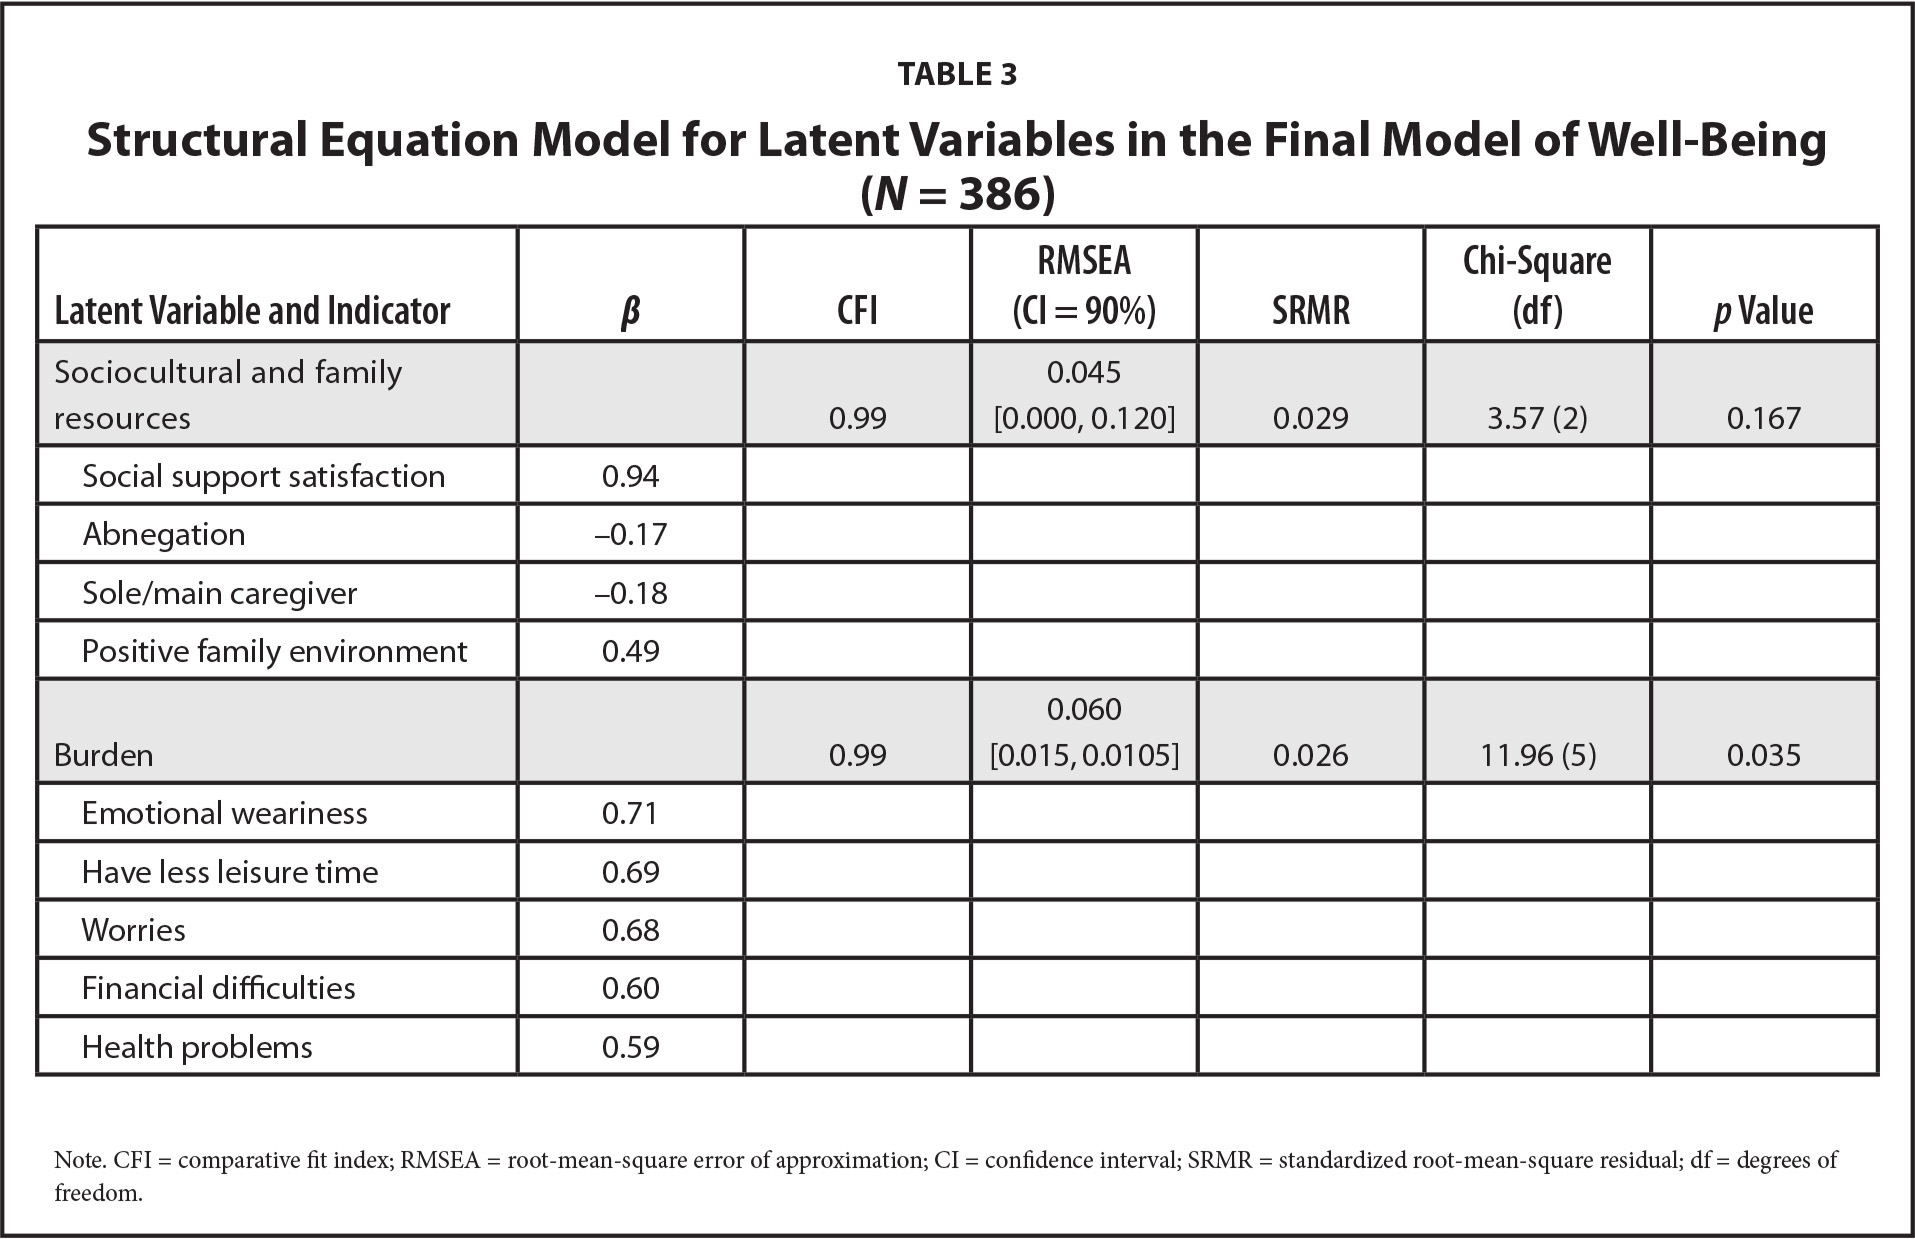 Structural Equation Model for Latent Variables in the Final Model of Well-Being (N = 386)